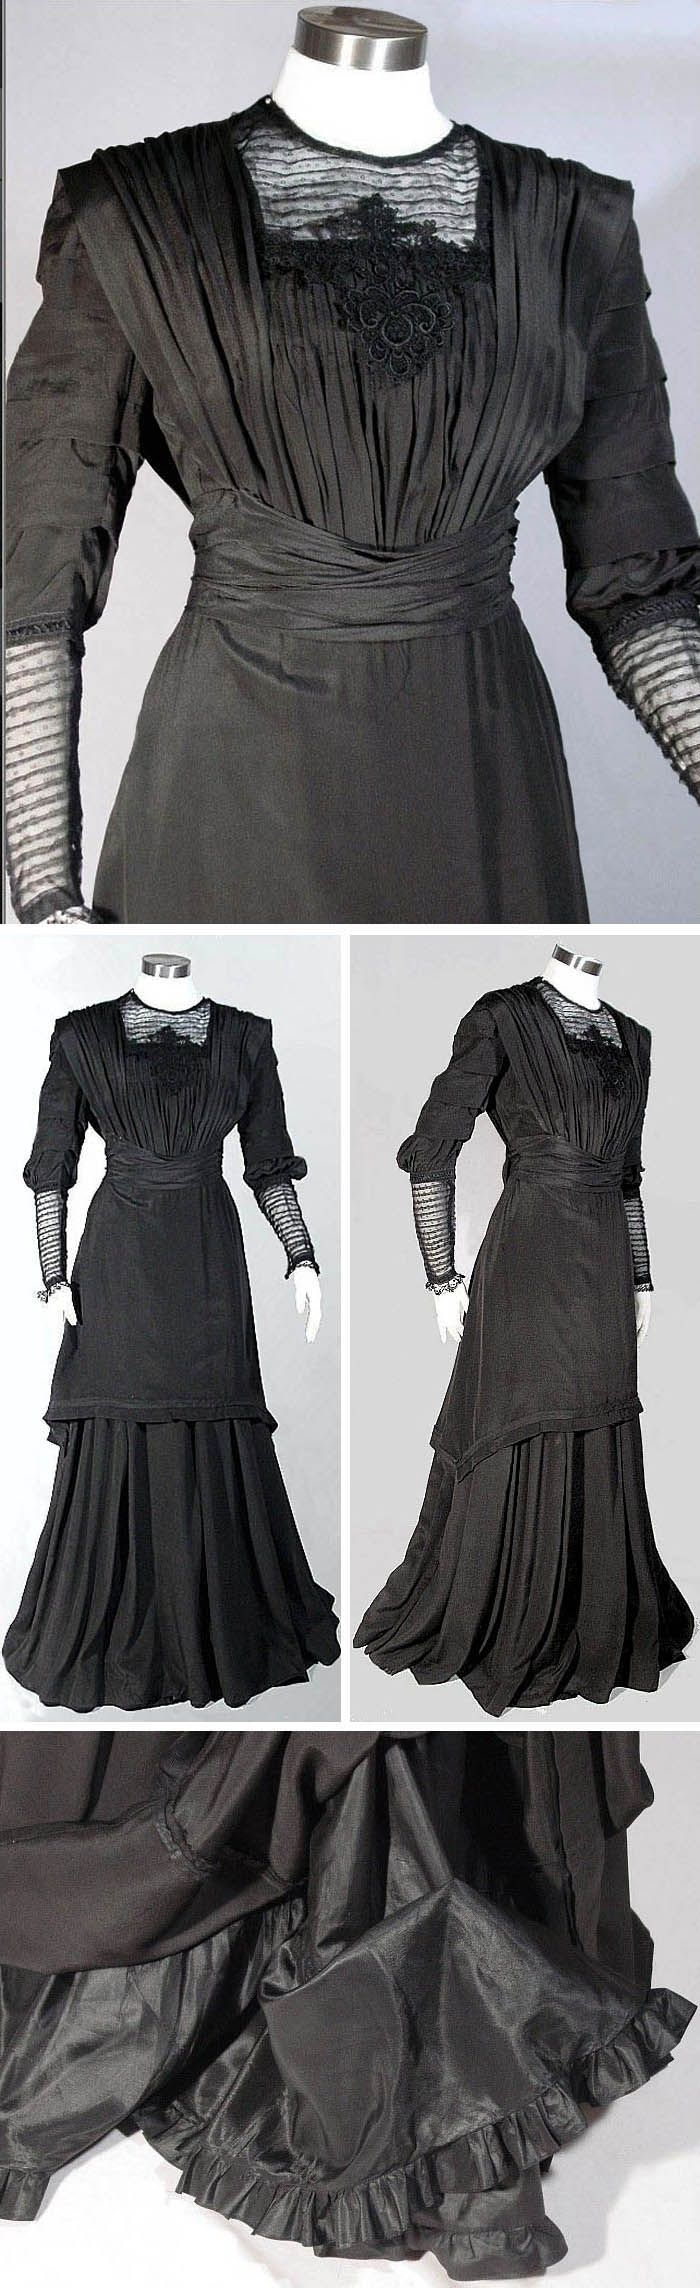 Day dress, ca. 1910. Black silk (cross between jersey and crepe), slightly elevated waistline. Tunic-style bodice with black embroidered net lace  above bust and on lower sleeves. Wide cummerbund at waist that narrows & hooks in back. Two-layer skirt, with underlayer being Princess-cut with 2 deep flounces under it at bottom of lining. Ruby Lane Vintage